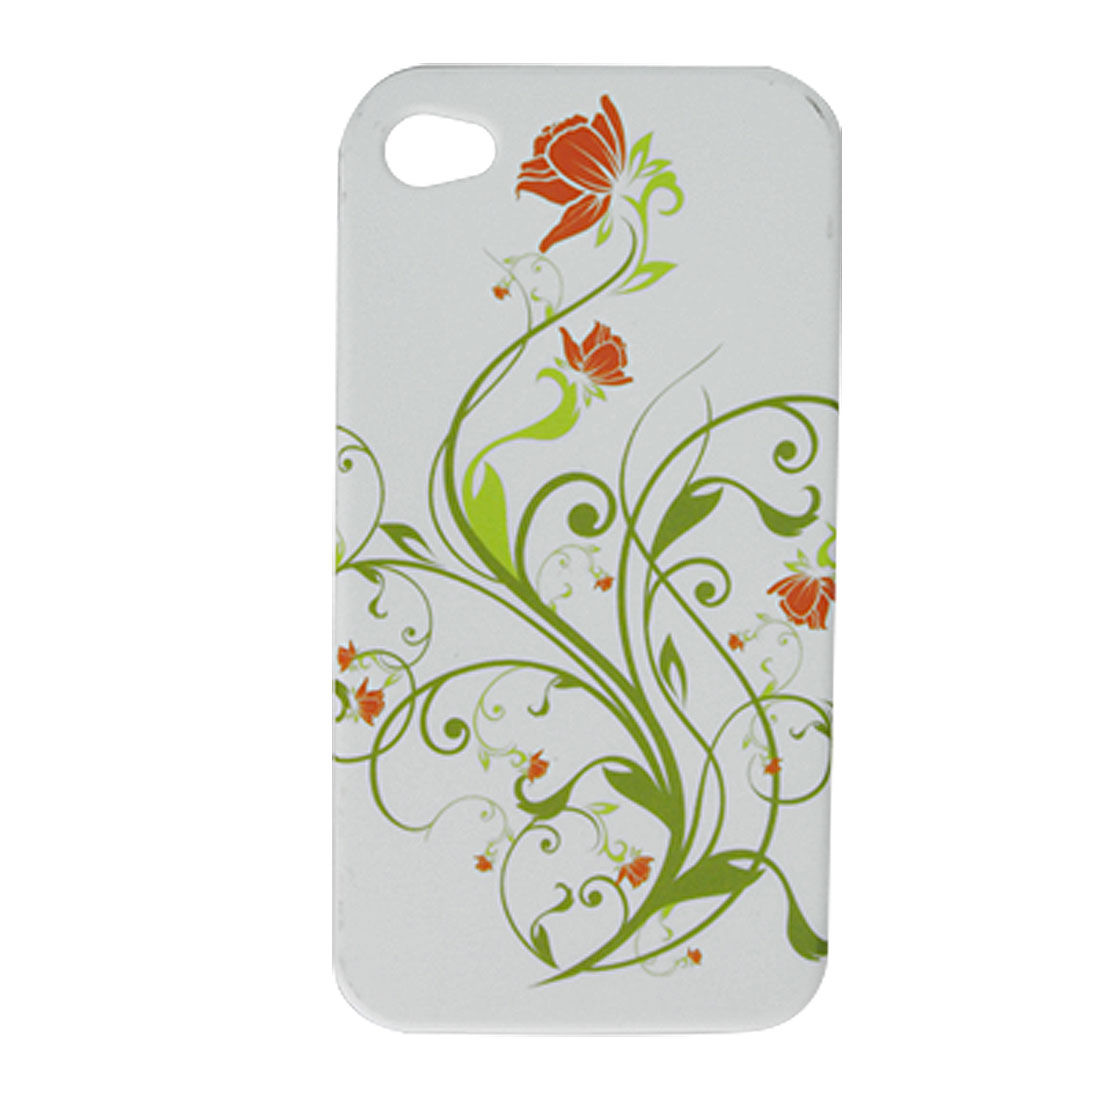 White Soft Plastic Butterfly Flower Case for iPhone 4 4G